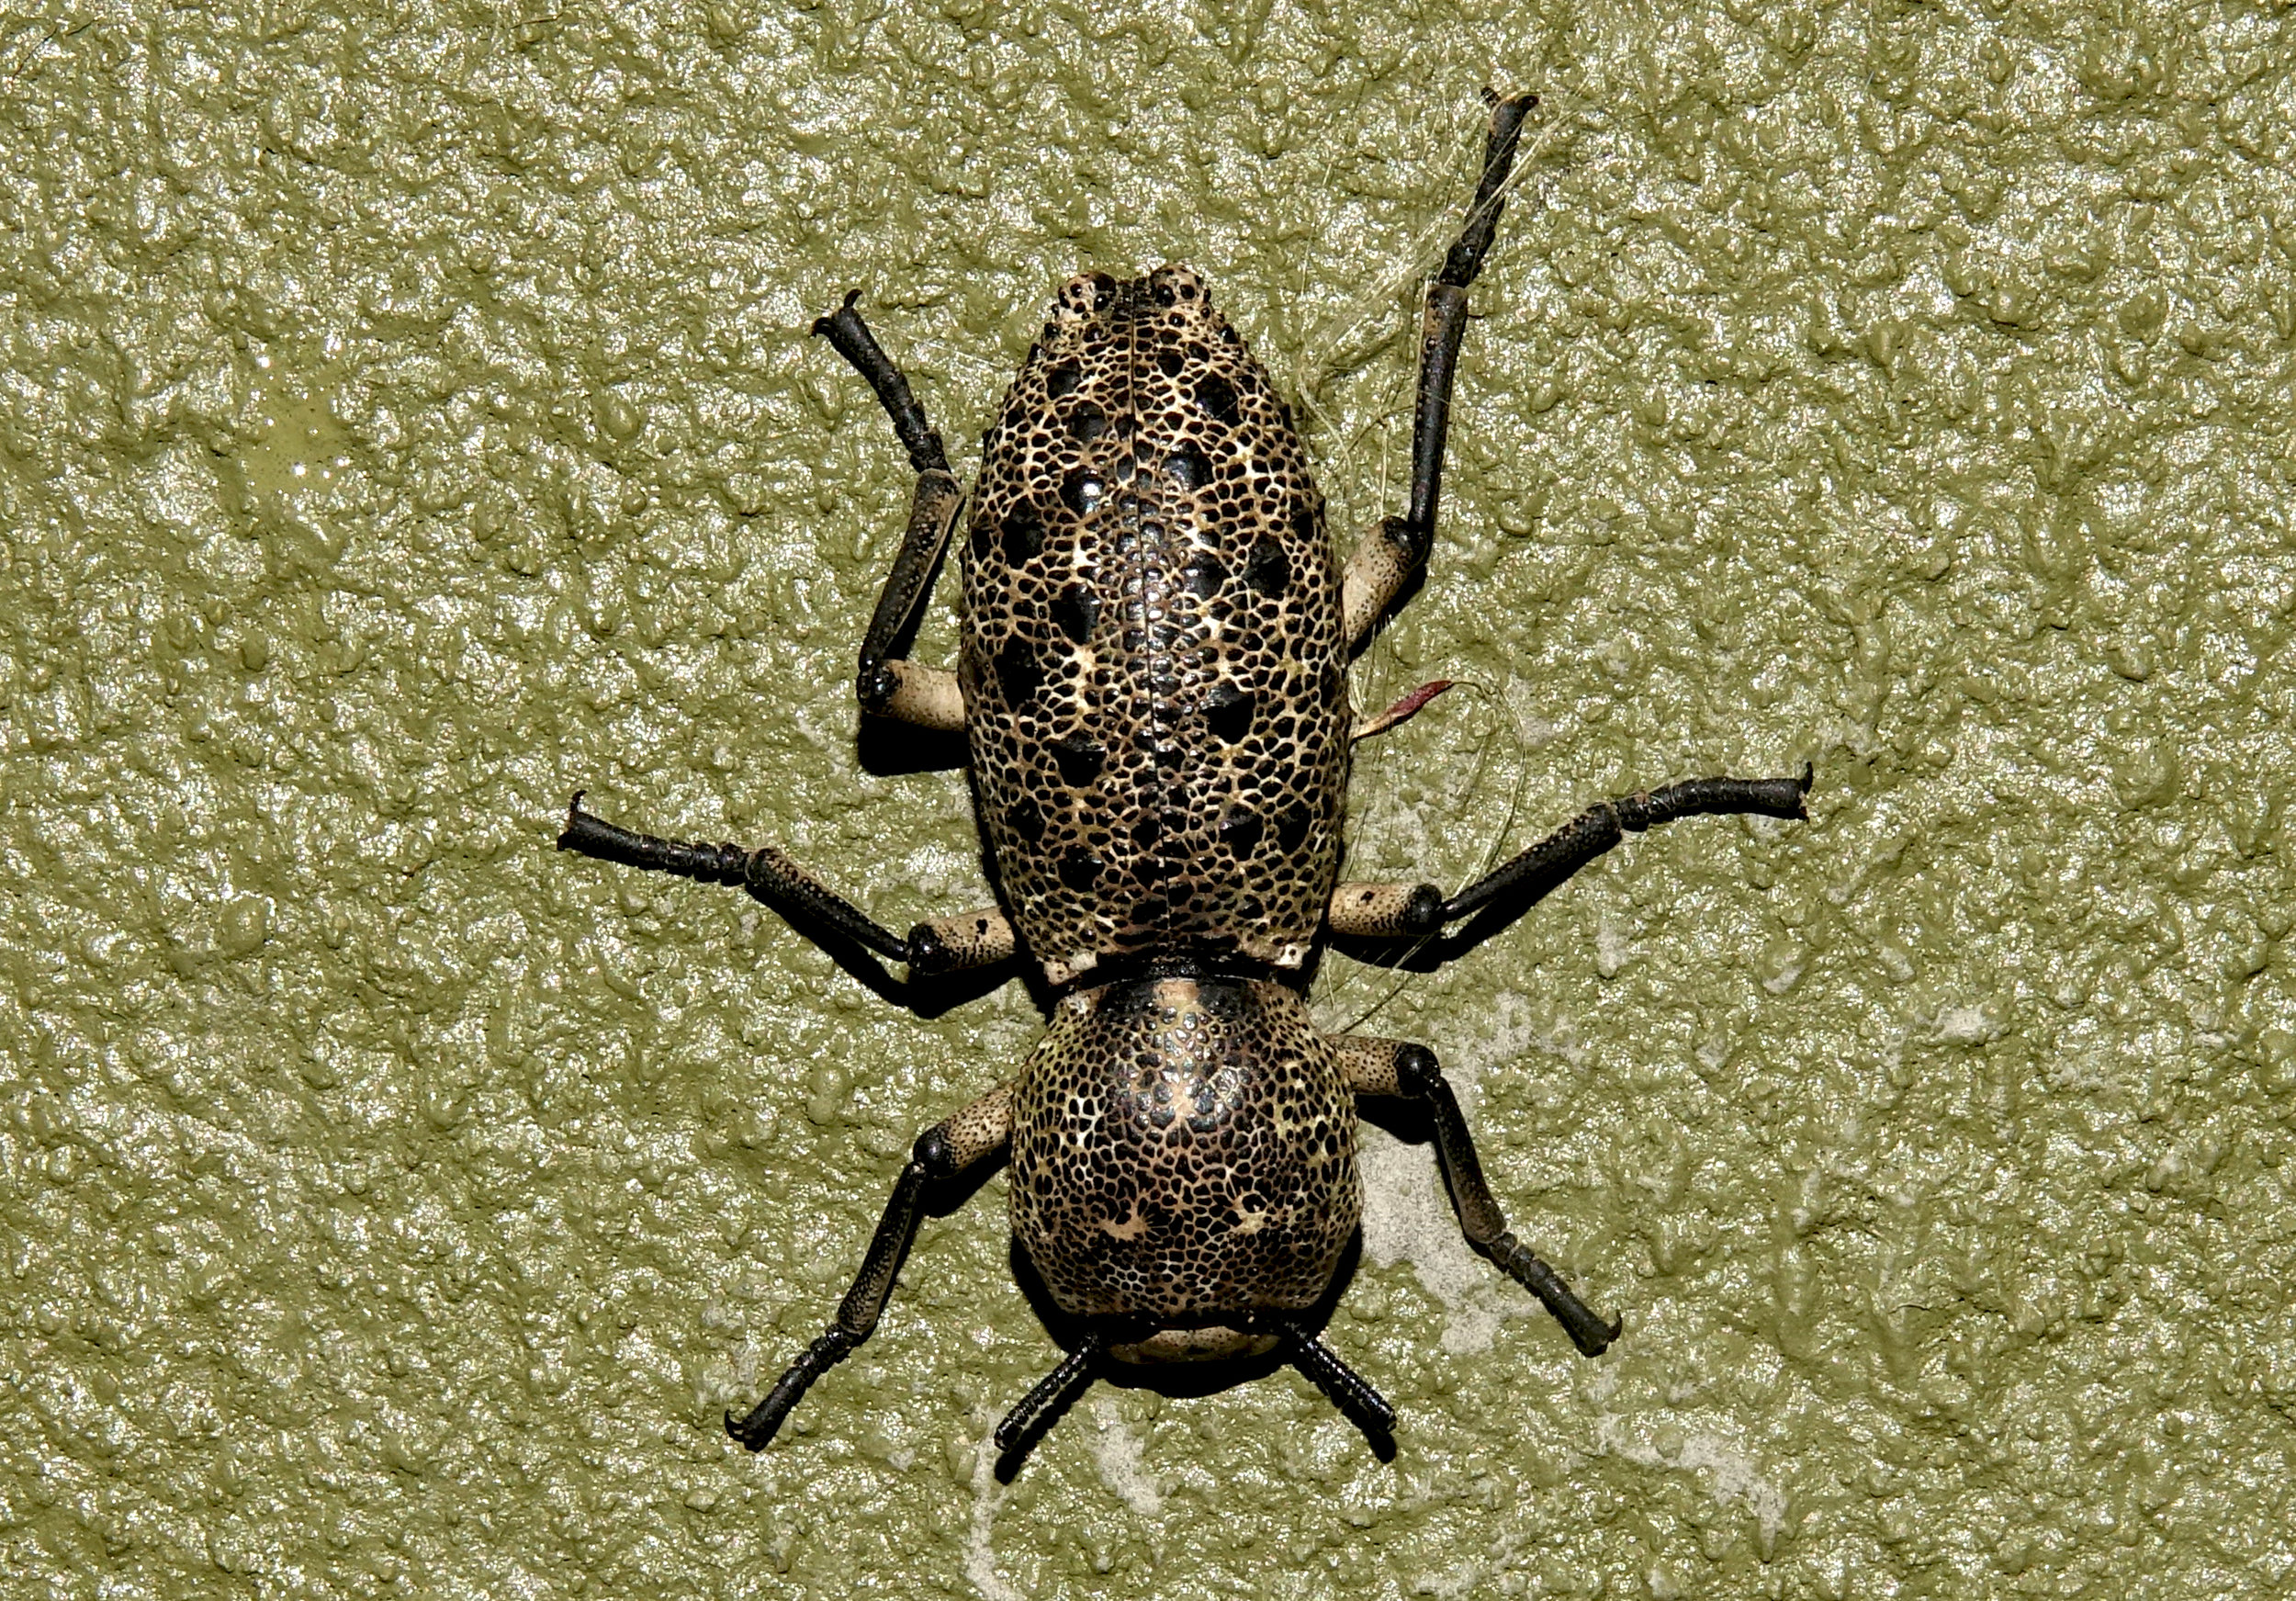 IRONCLAD BEETLE, Family Zopheridae, Santa Elena, Costa Rica, 2019